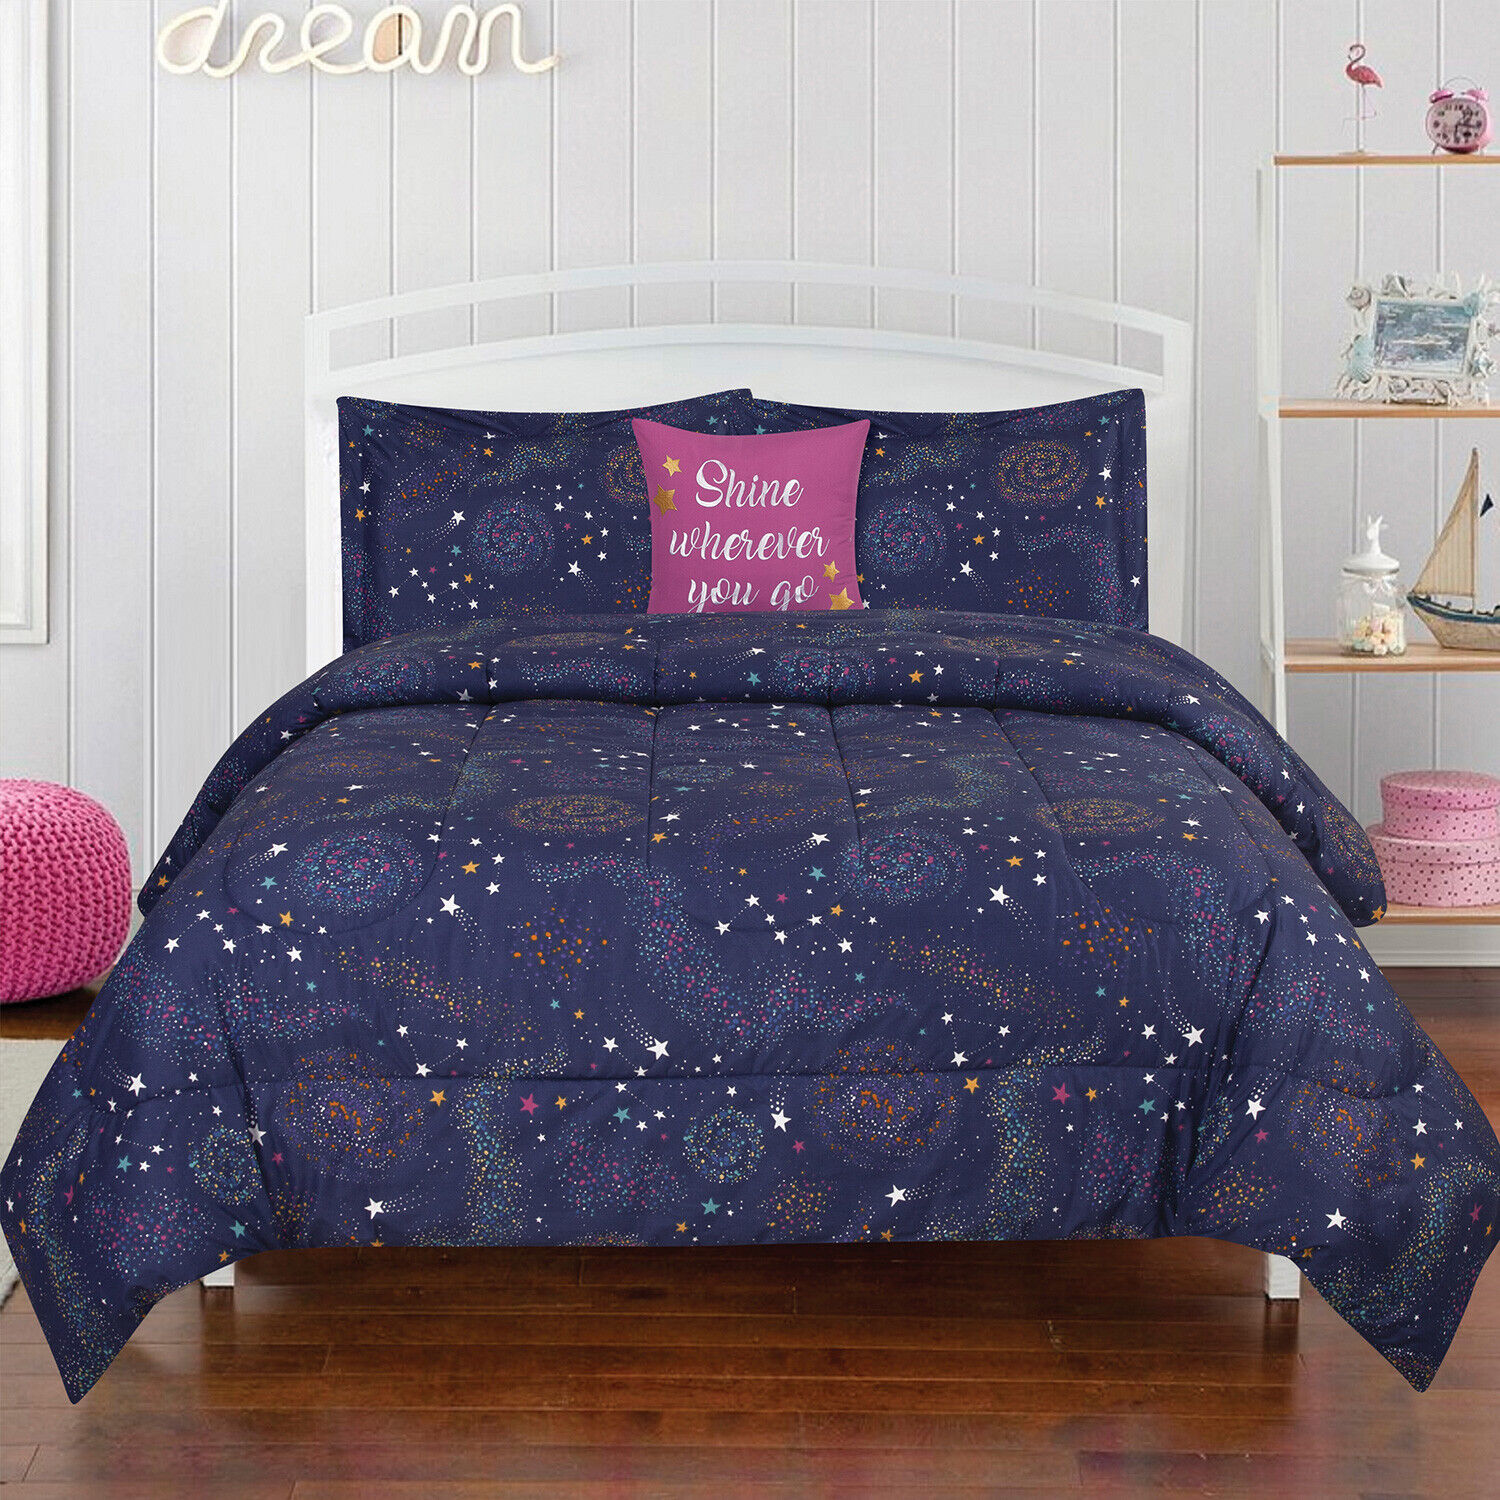 Twin or Full/Queen Outer Space Stars Comforter Bedding Set with Pillow Blue Pink Bedding